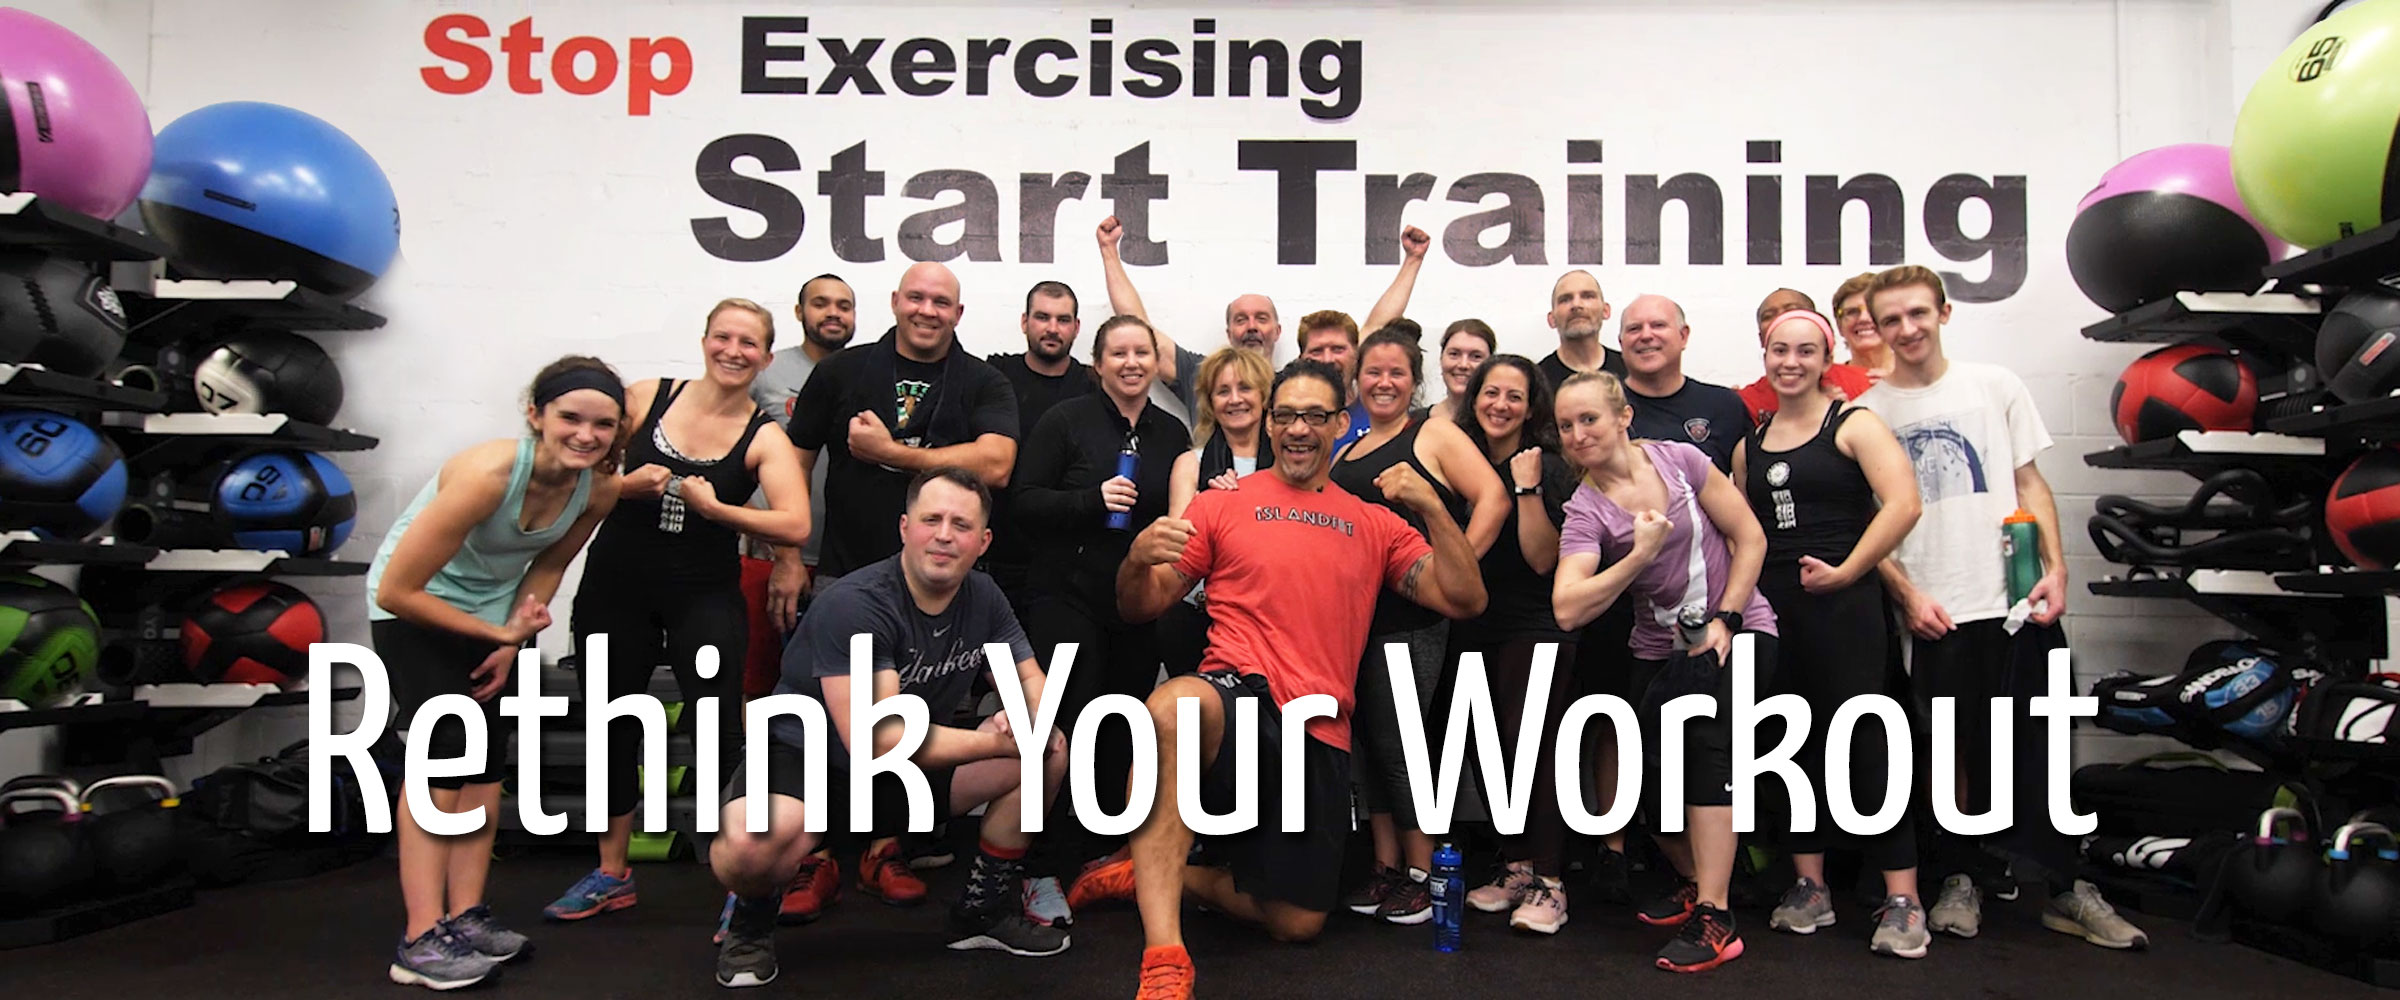 Rethink Your Workout (banner image)